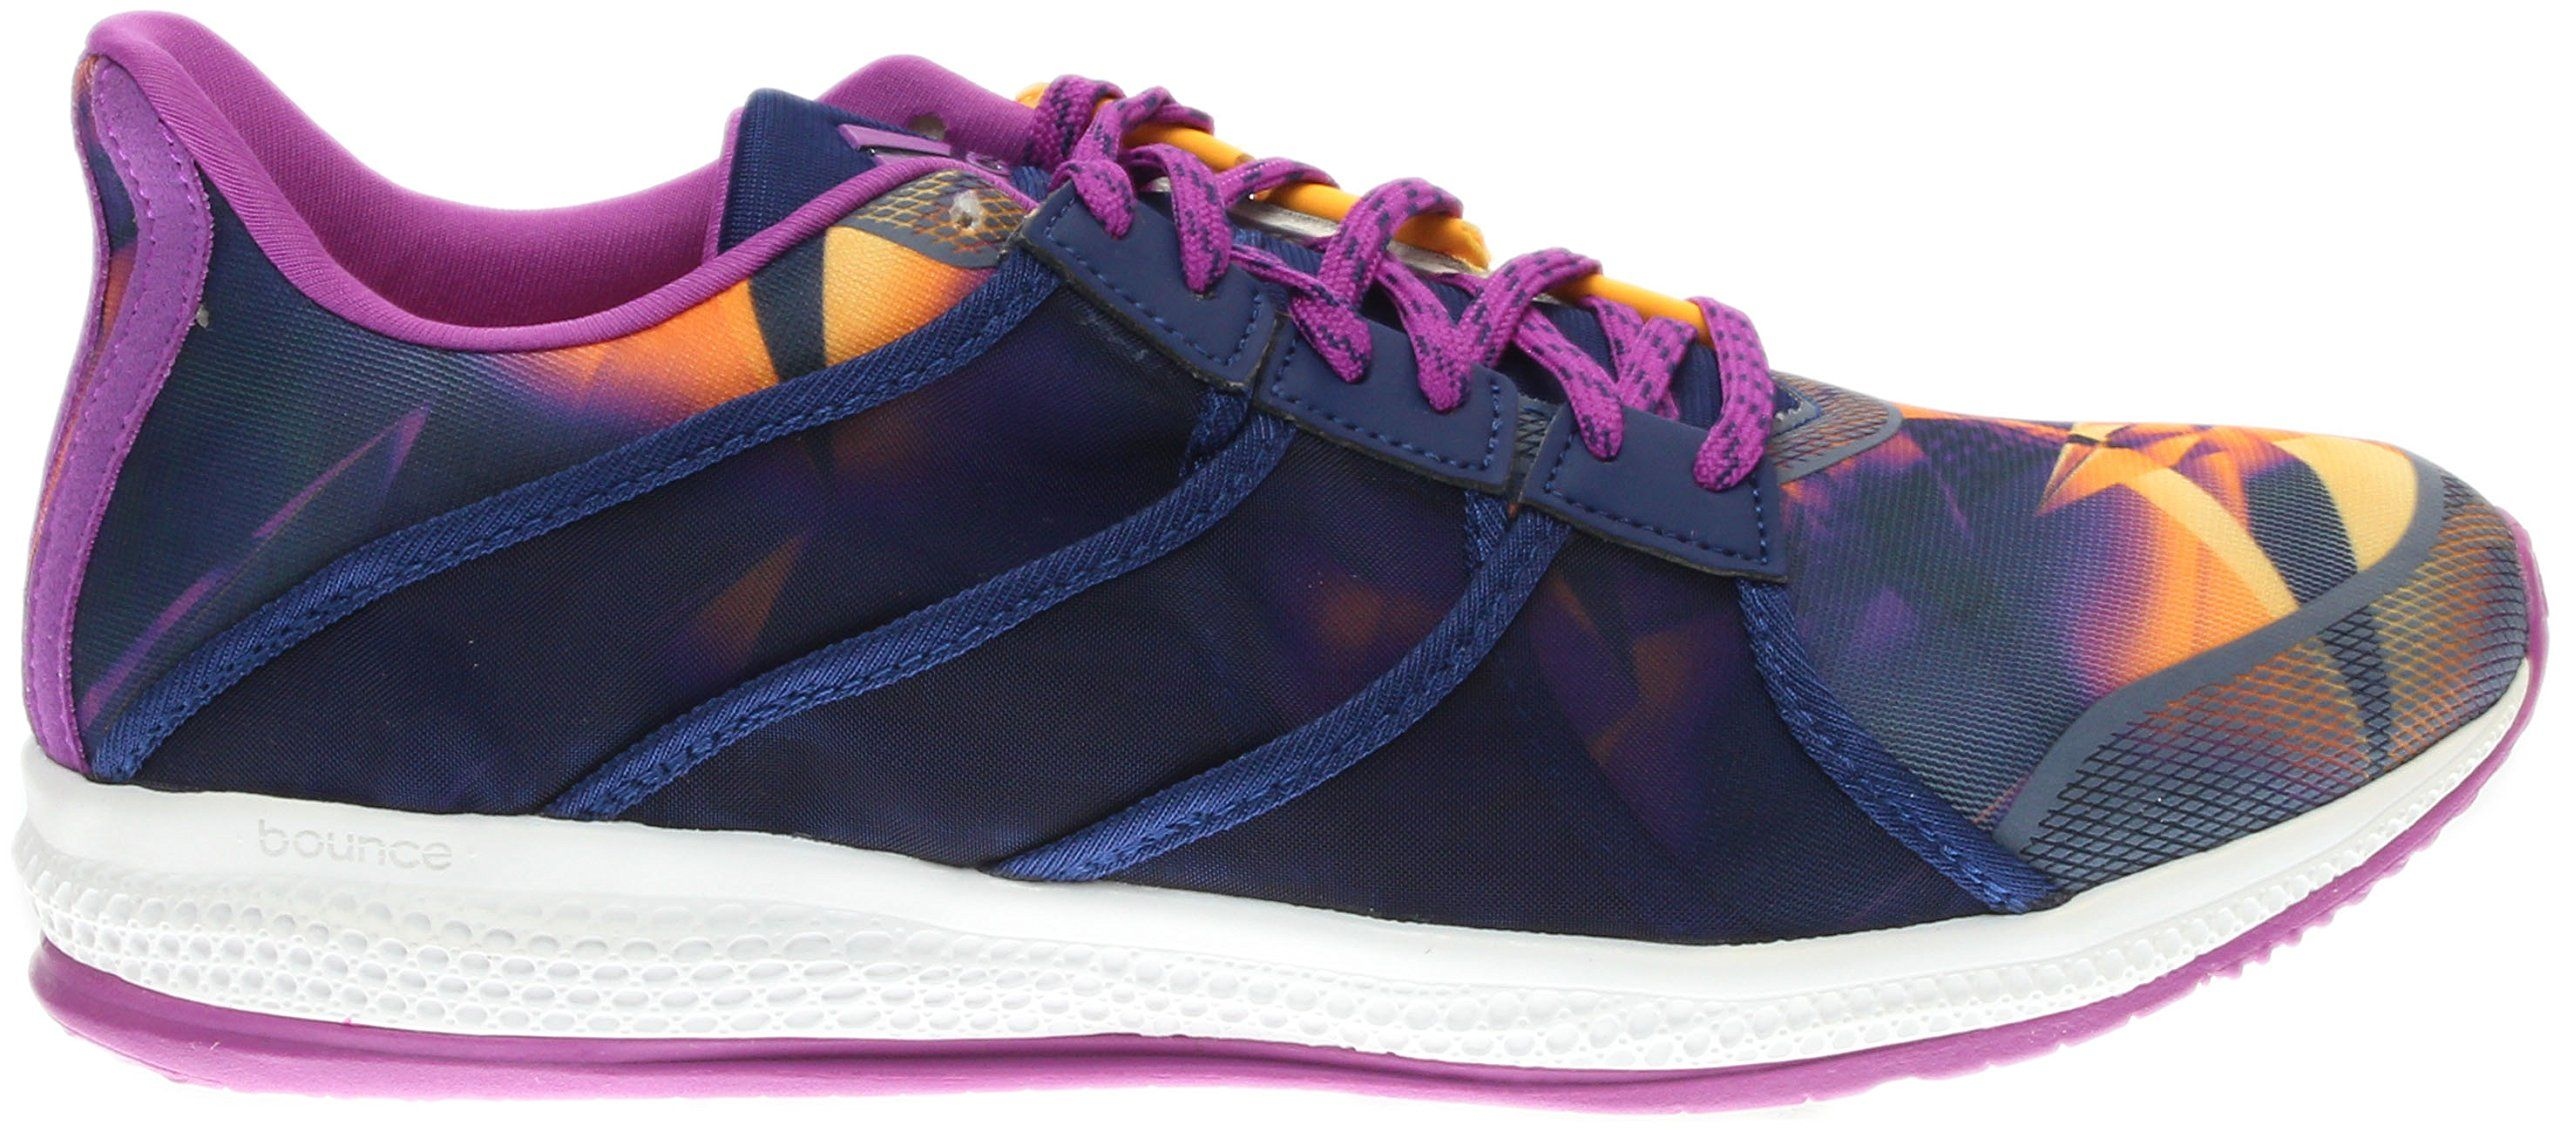 fc71d8845b96f adidas Performance Womens Gymbreaker Bounce CrossTrainer Shoe Shock Purple  Solar Gold White 6.5 M US   To view further for this item